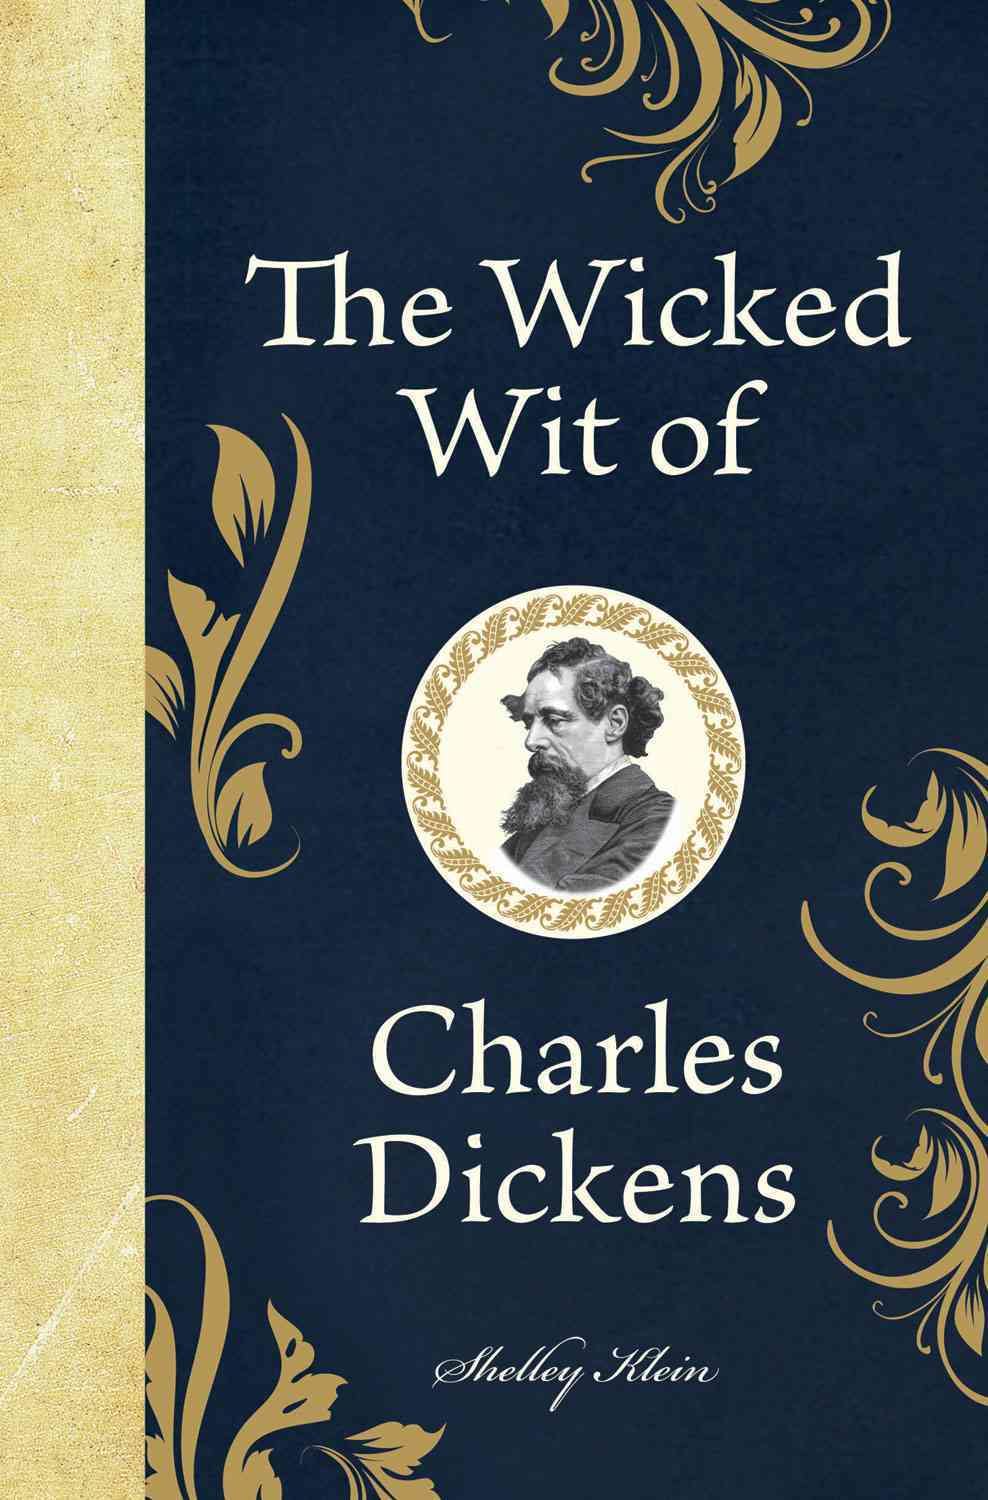 The Wicked Wit of Charles Dickens (Hardcover)